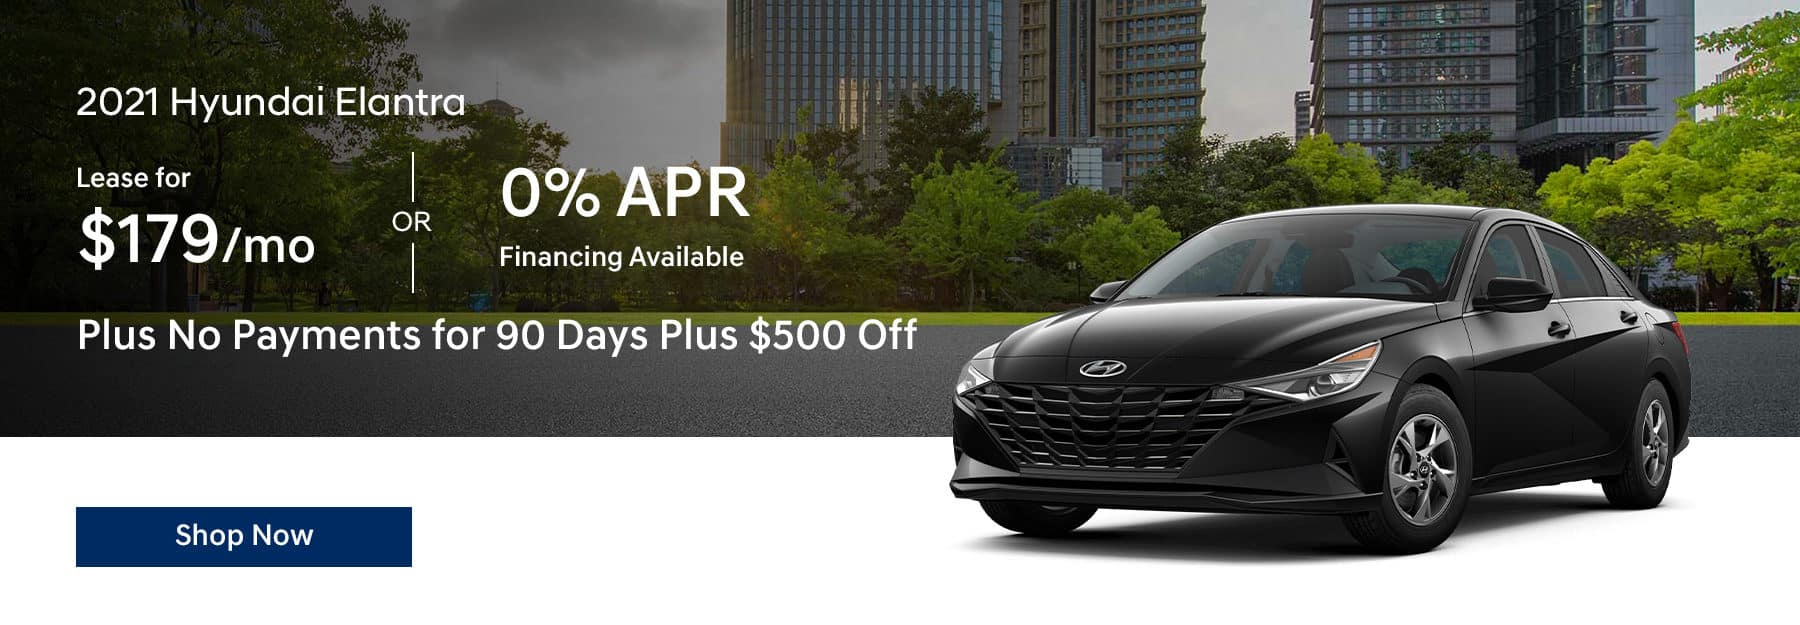 2021 Sonata SE Subtext: Lease for $259/mo OR 0% APR Available Plus No Payments for 90 Days Plus $500 Off